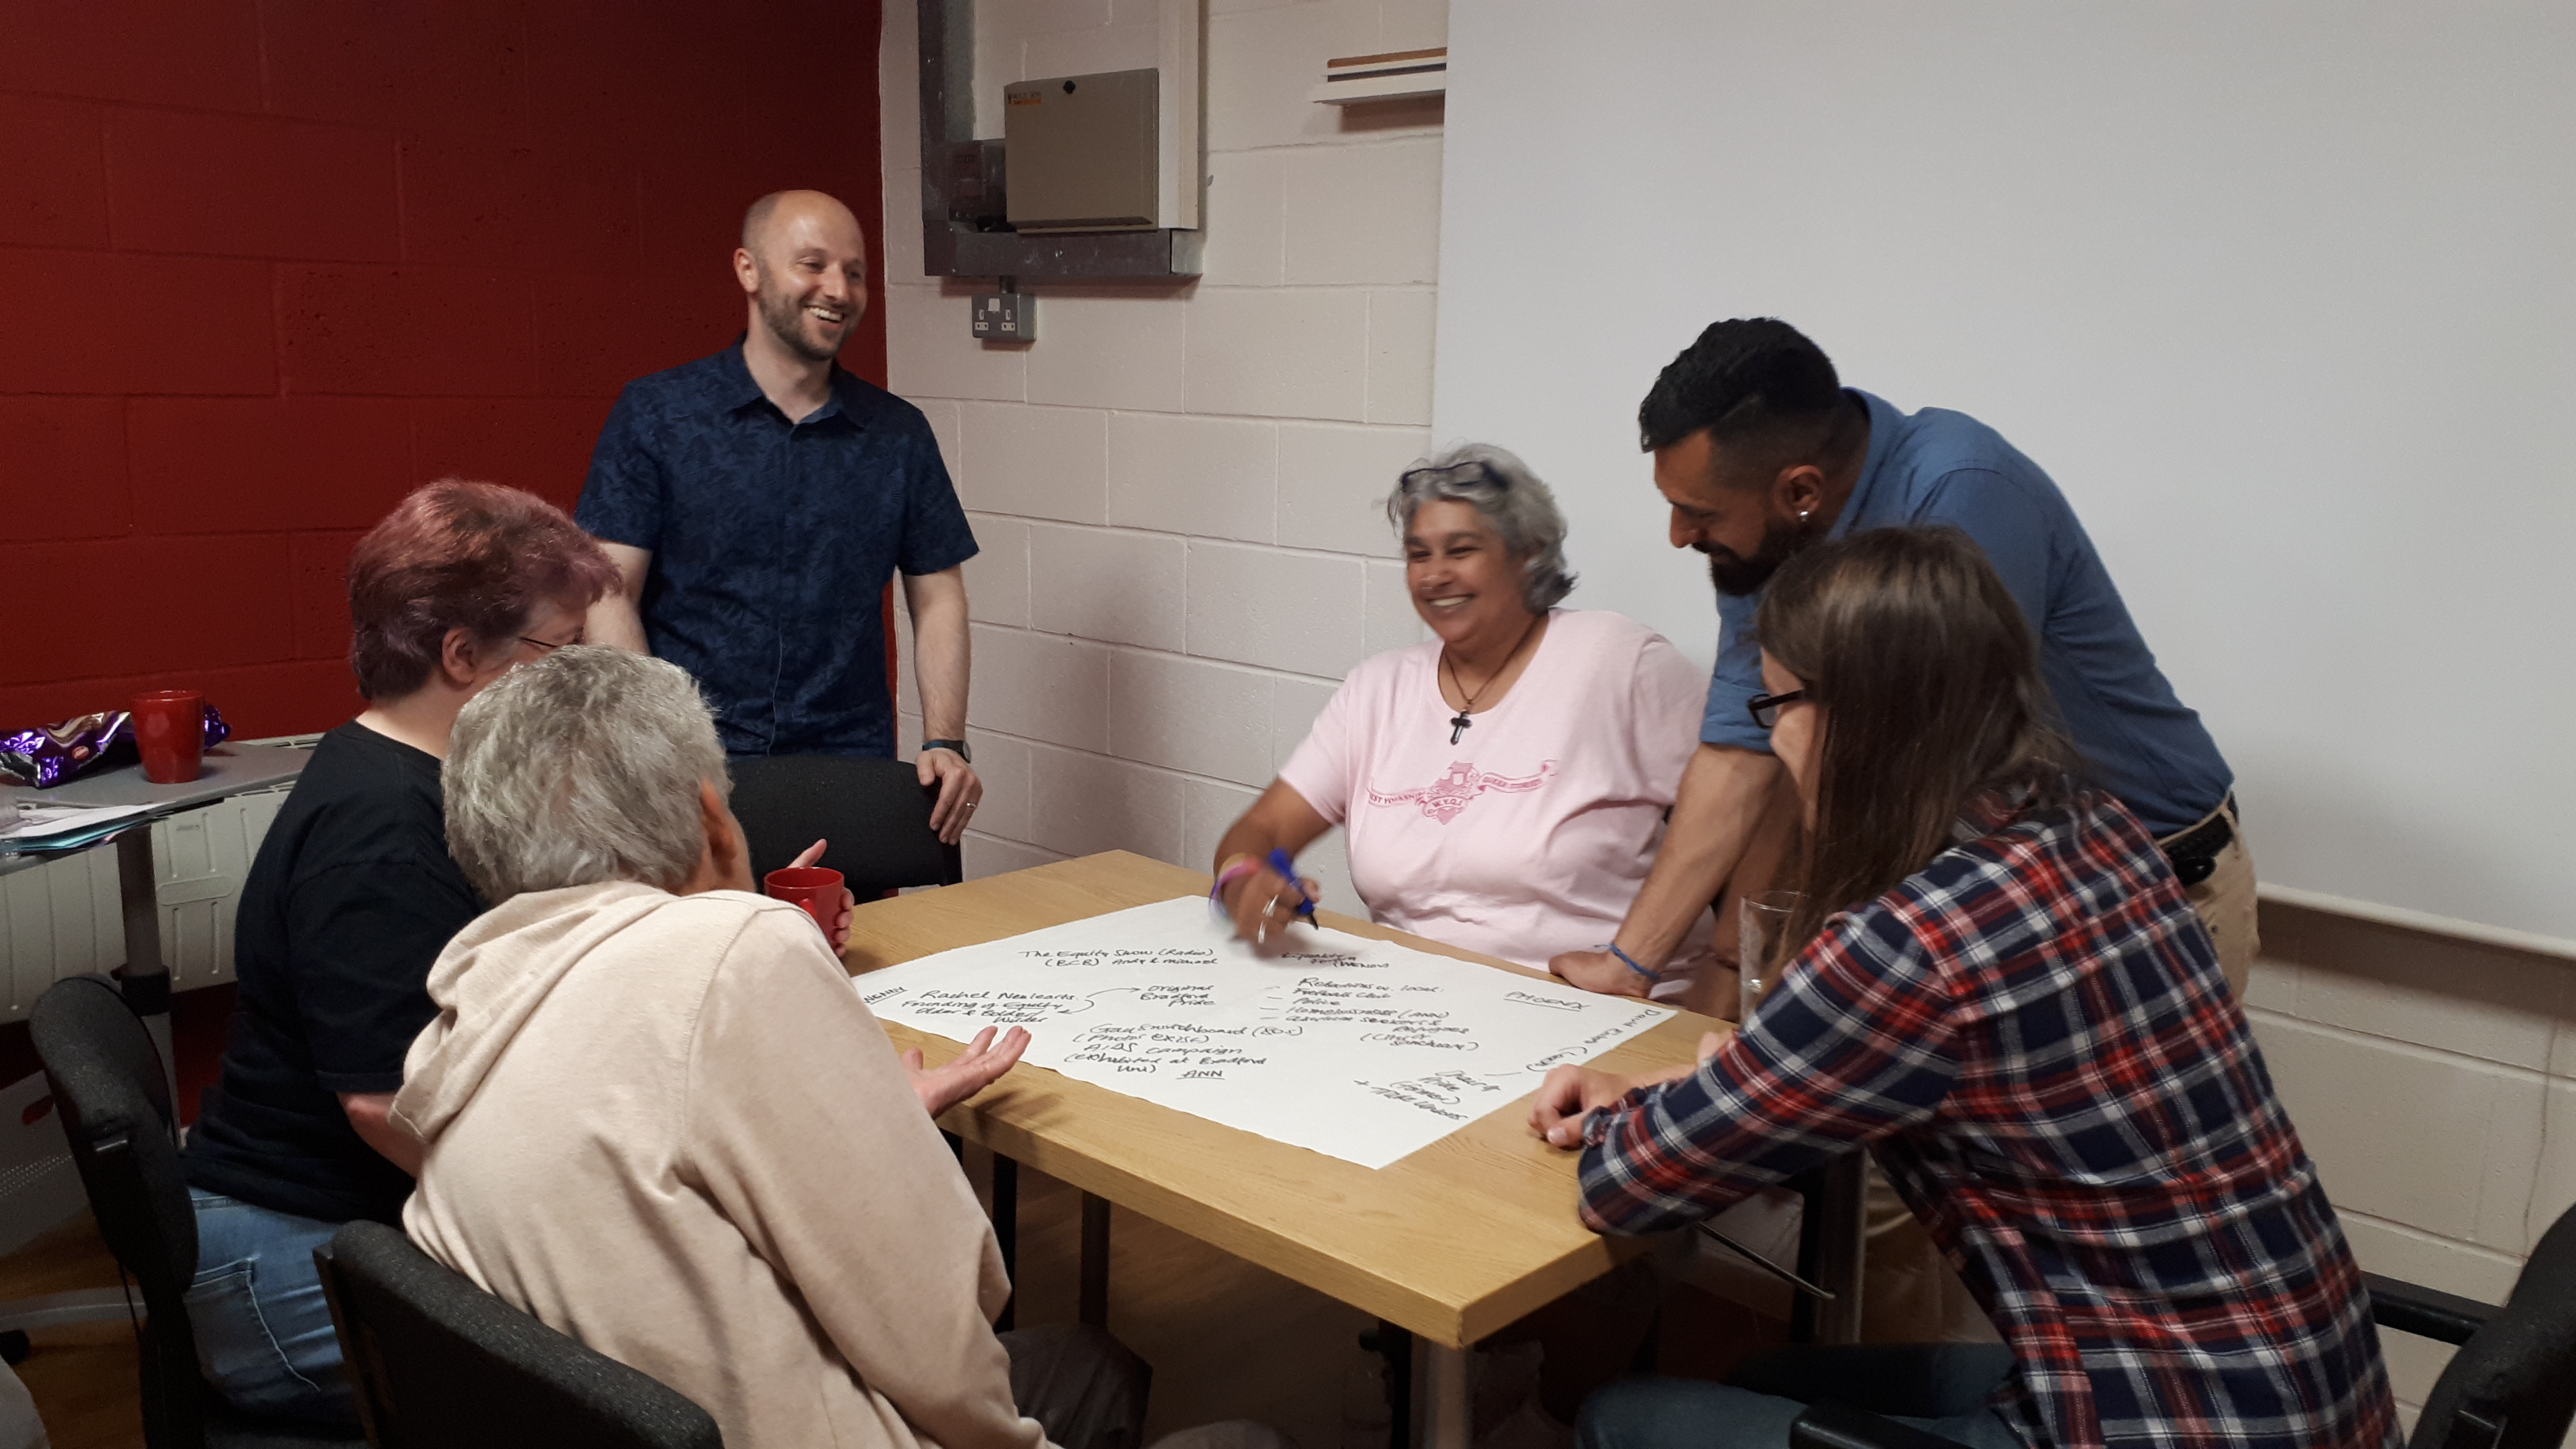 A community group gathers around a table writing on flip chart paper.